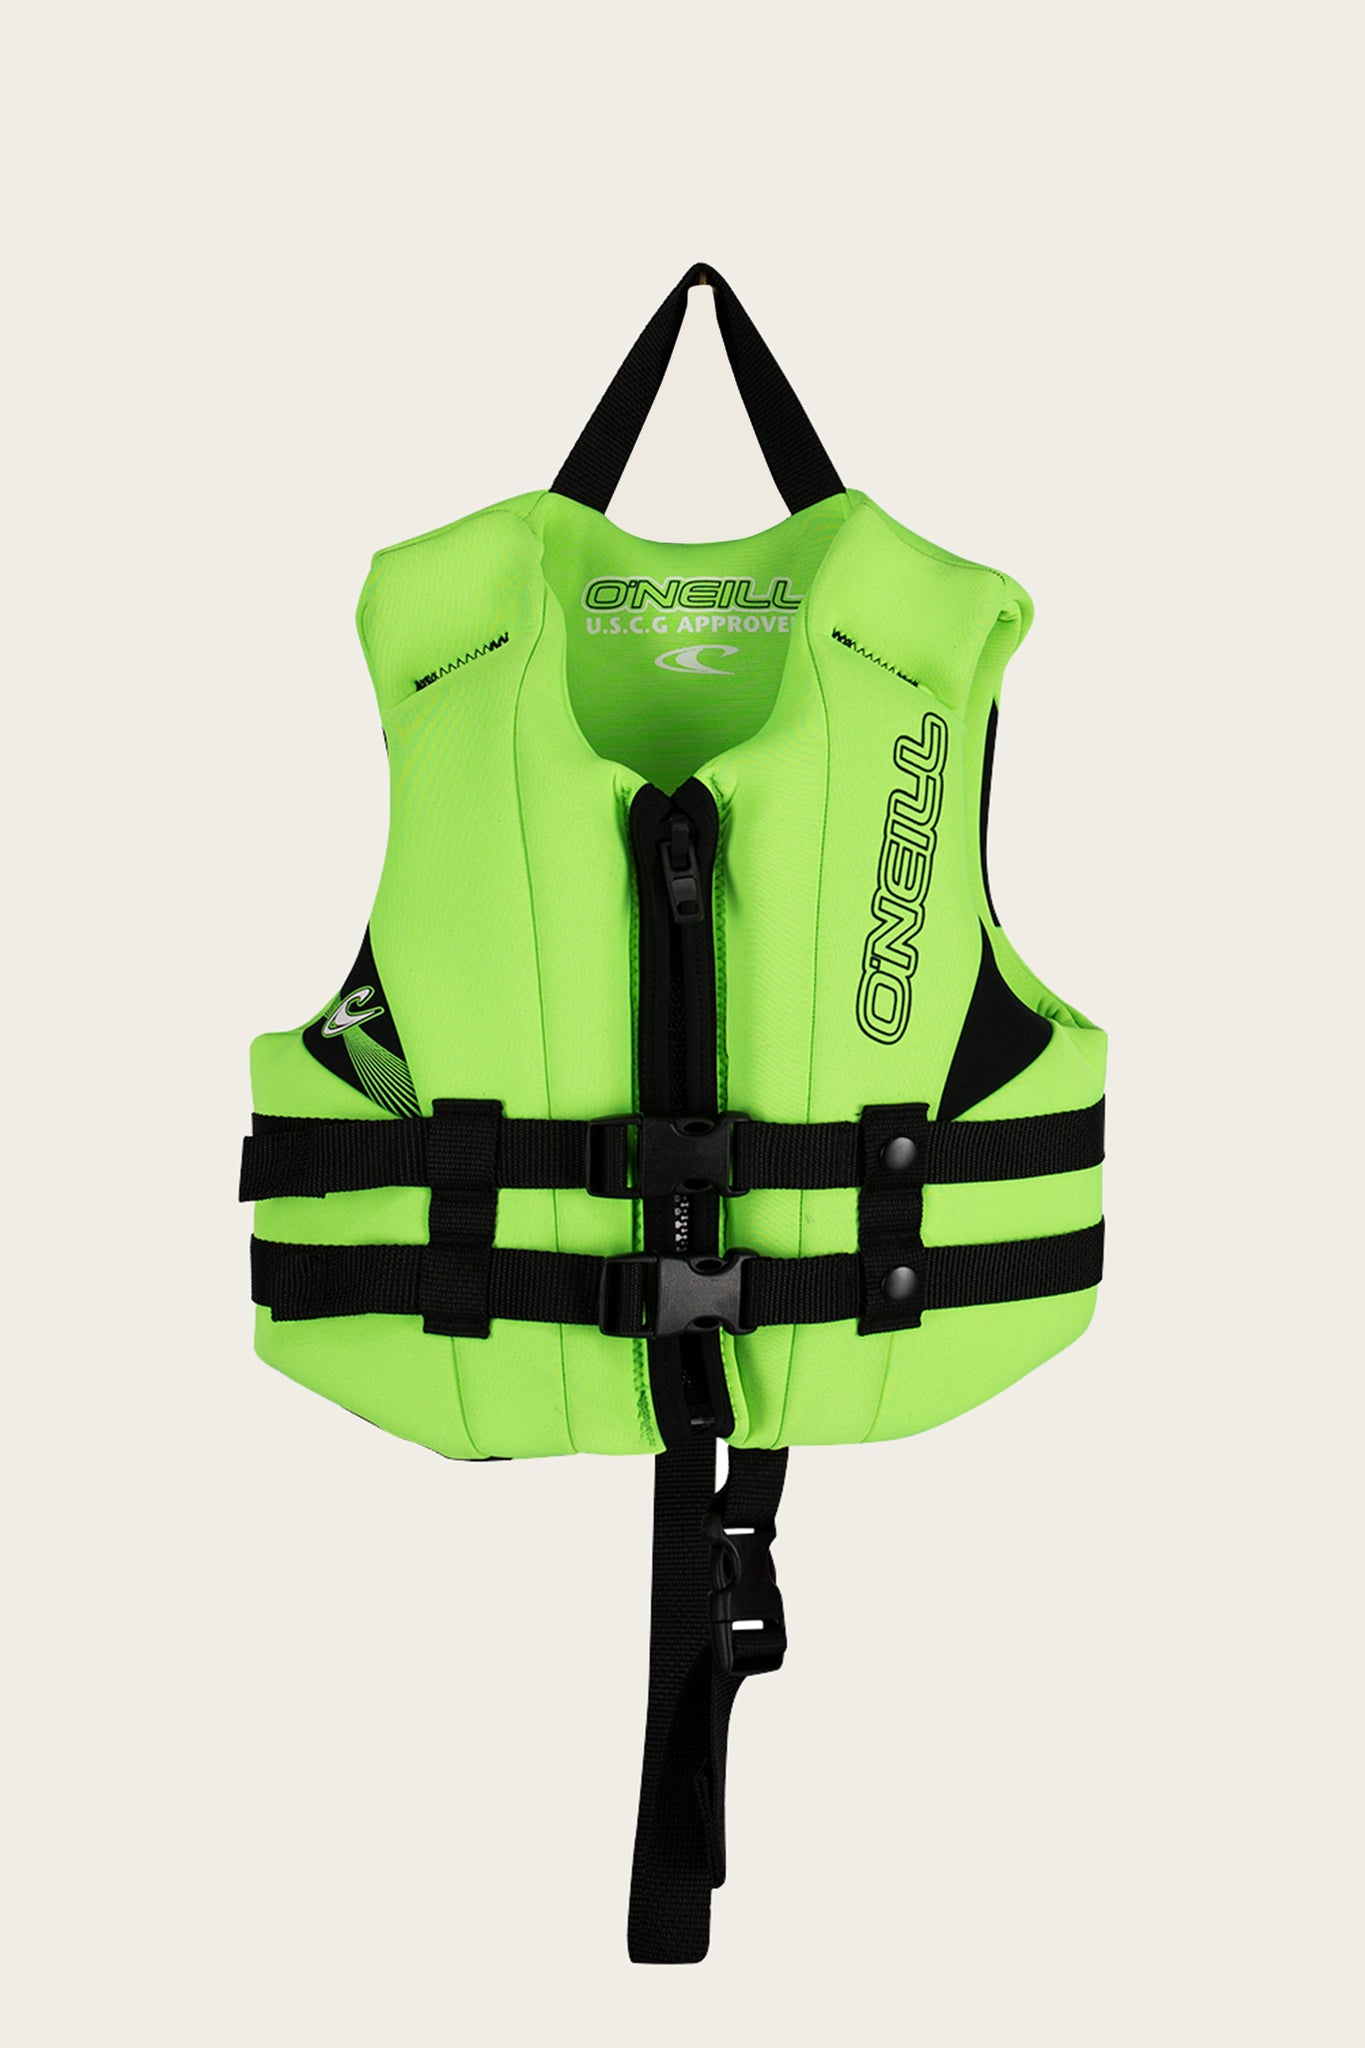 Child Reactor Uscg Vest - Dglo/Dglo/Blk | O'Neill